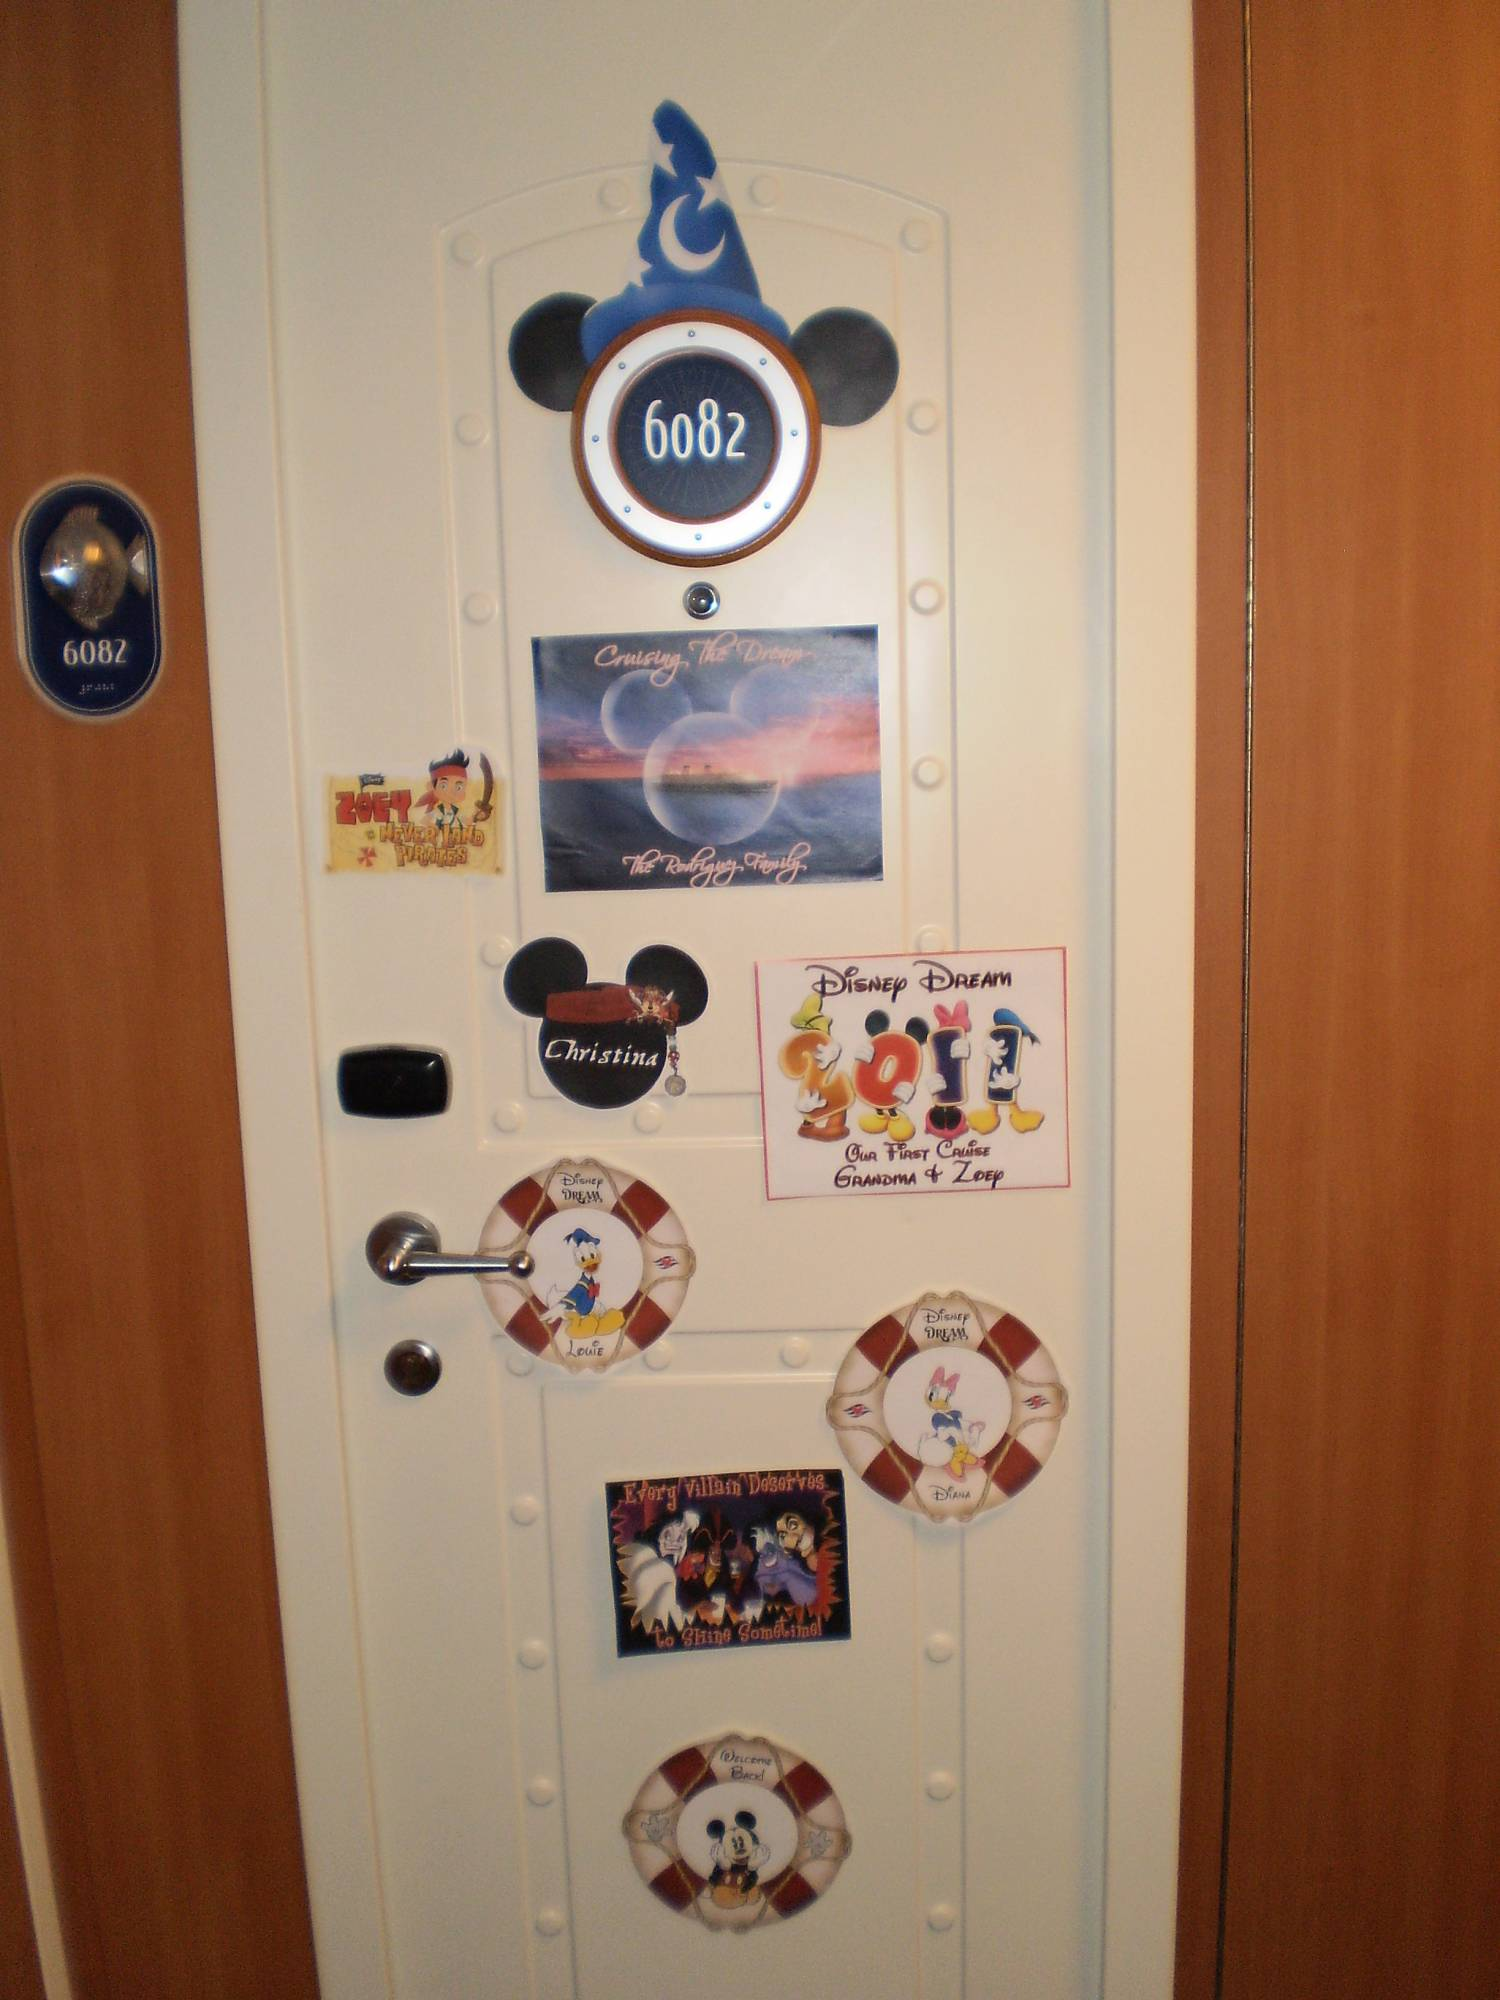 Disney Dream Decorated Stateroom Door